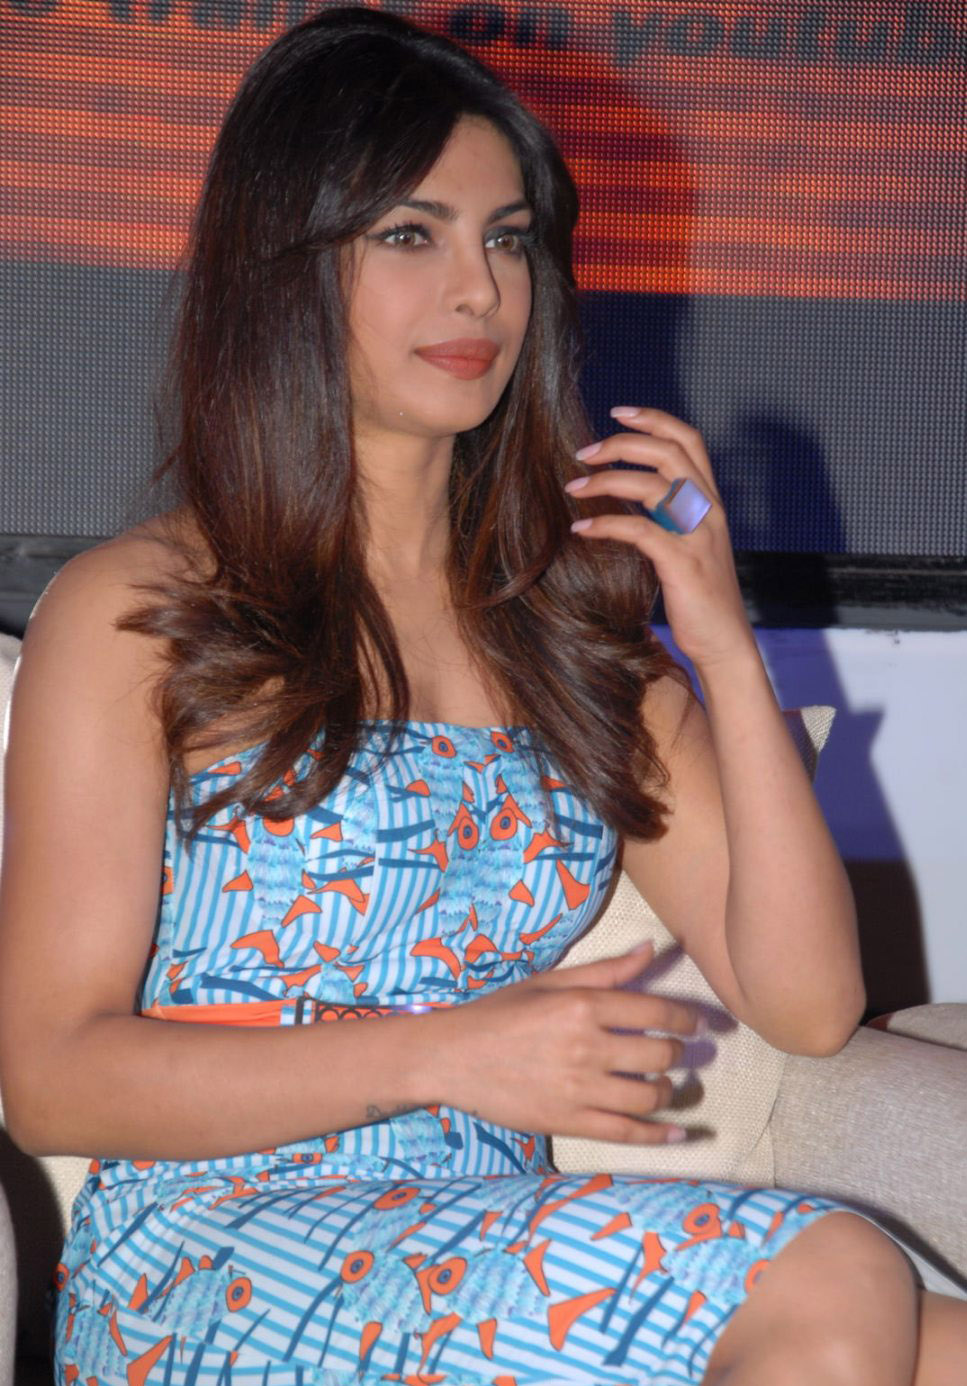 priyanka chopra zanjeer(toofan) trailer photos 2